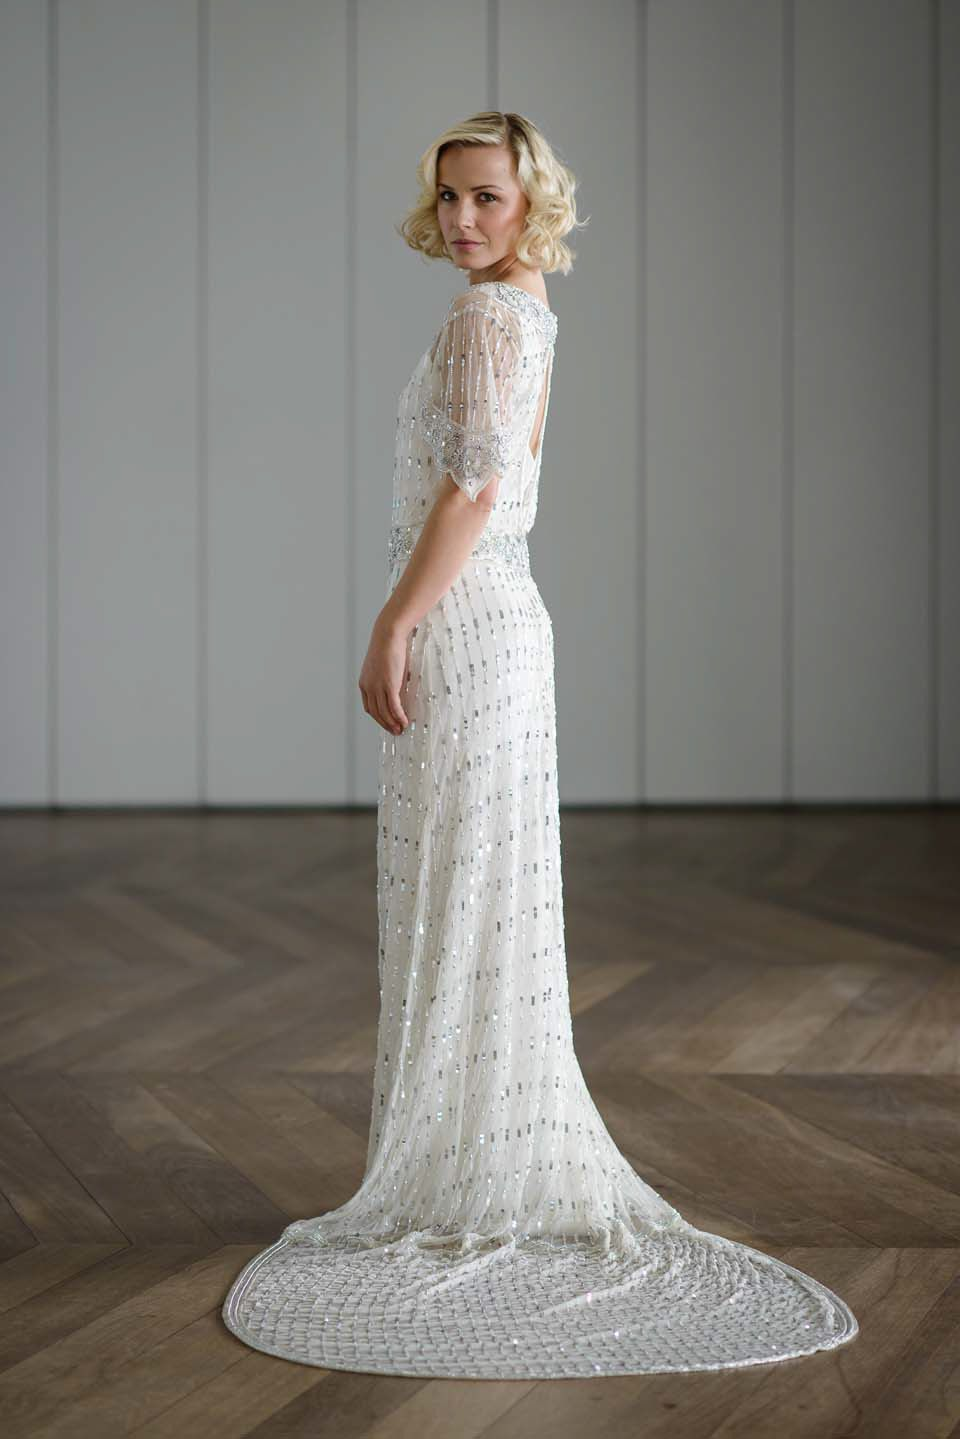 Vicky Rowe A Debut Collection Of 1920s And 1930s Inspired Heirloom